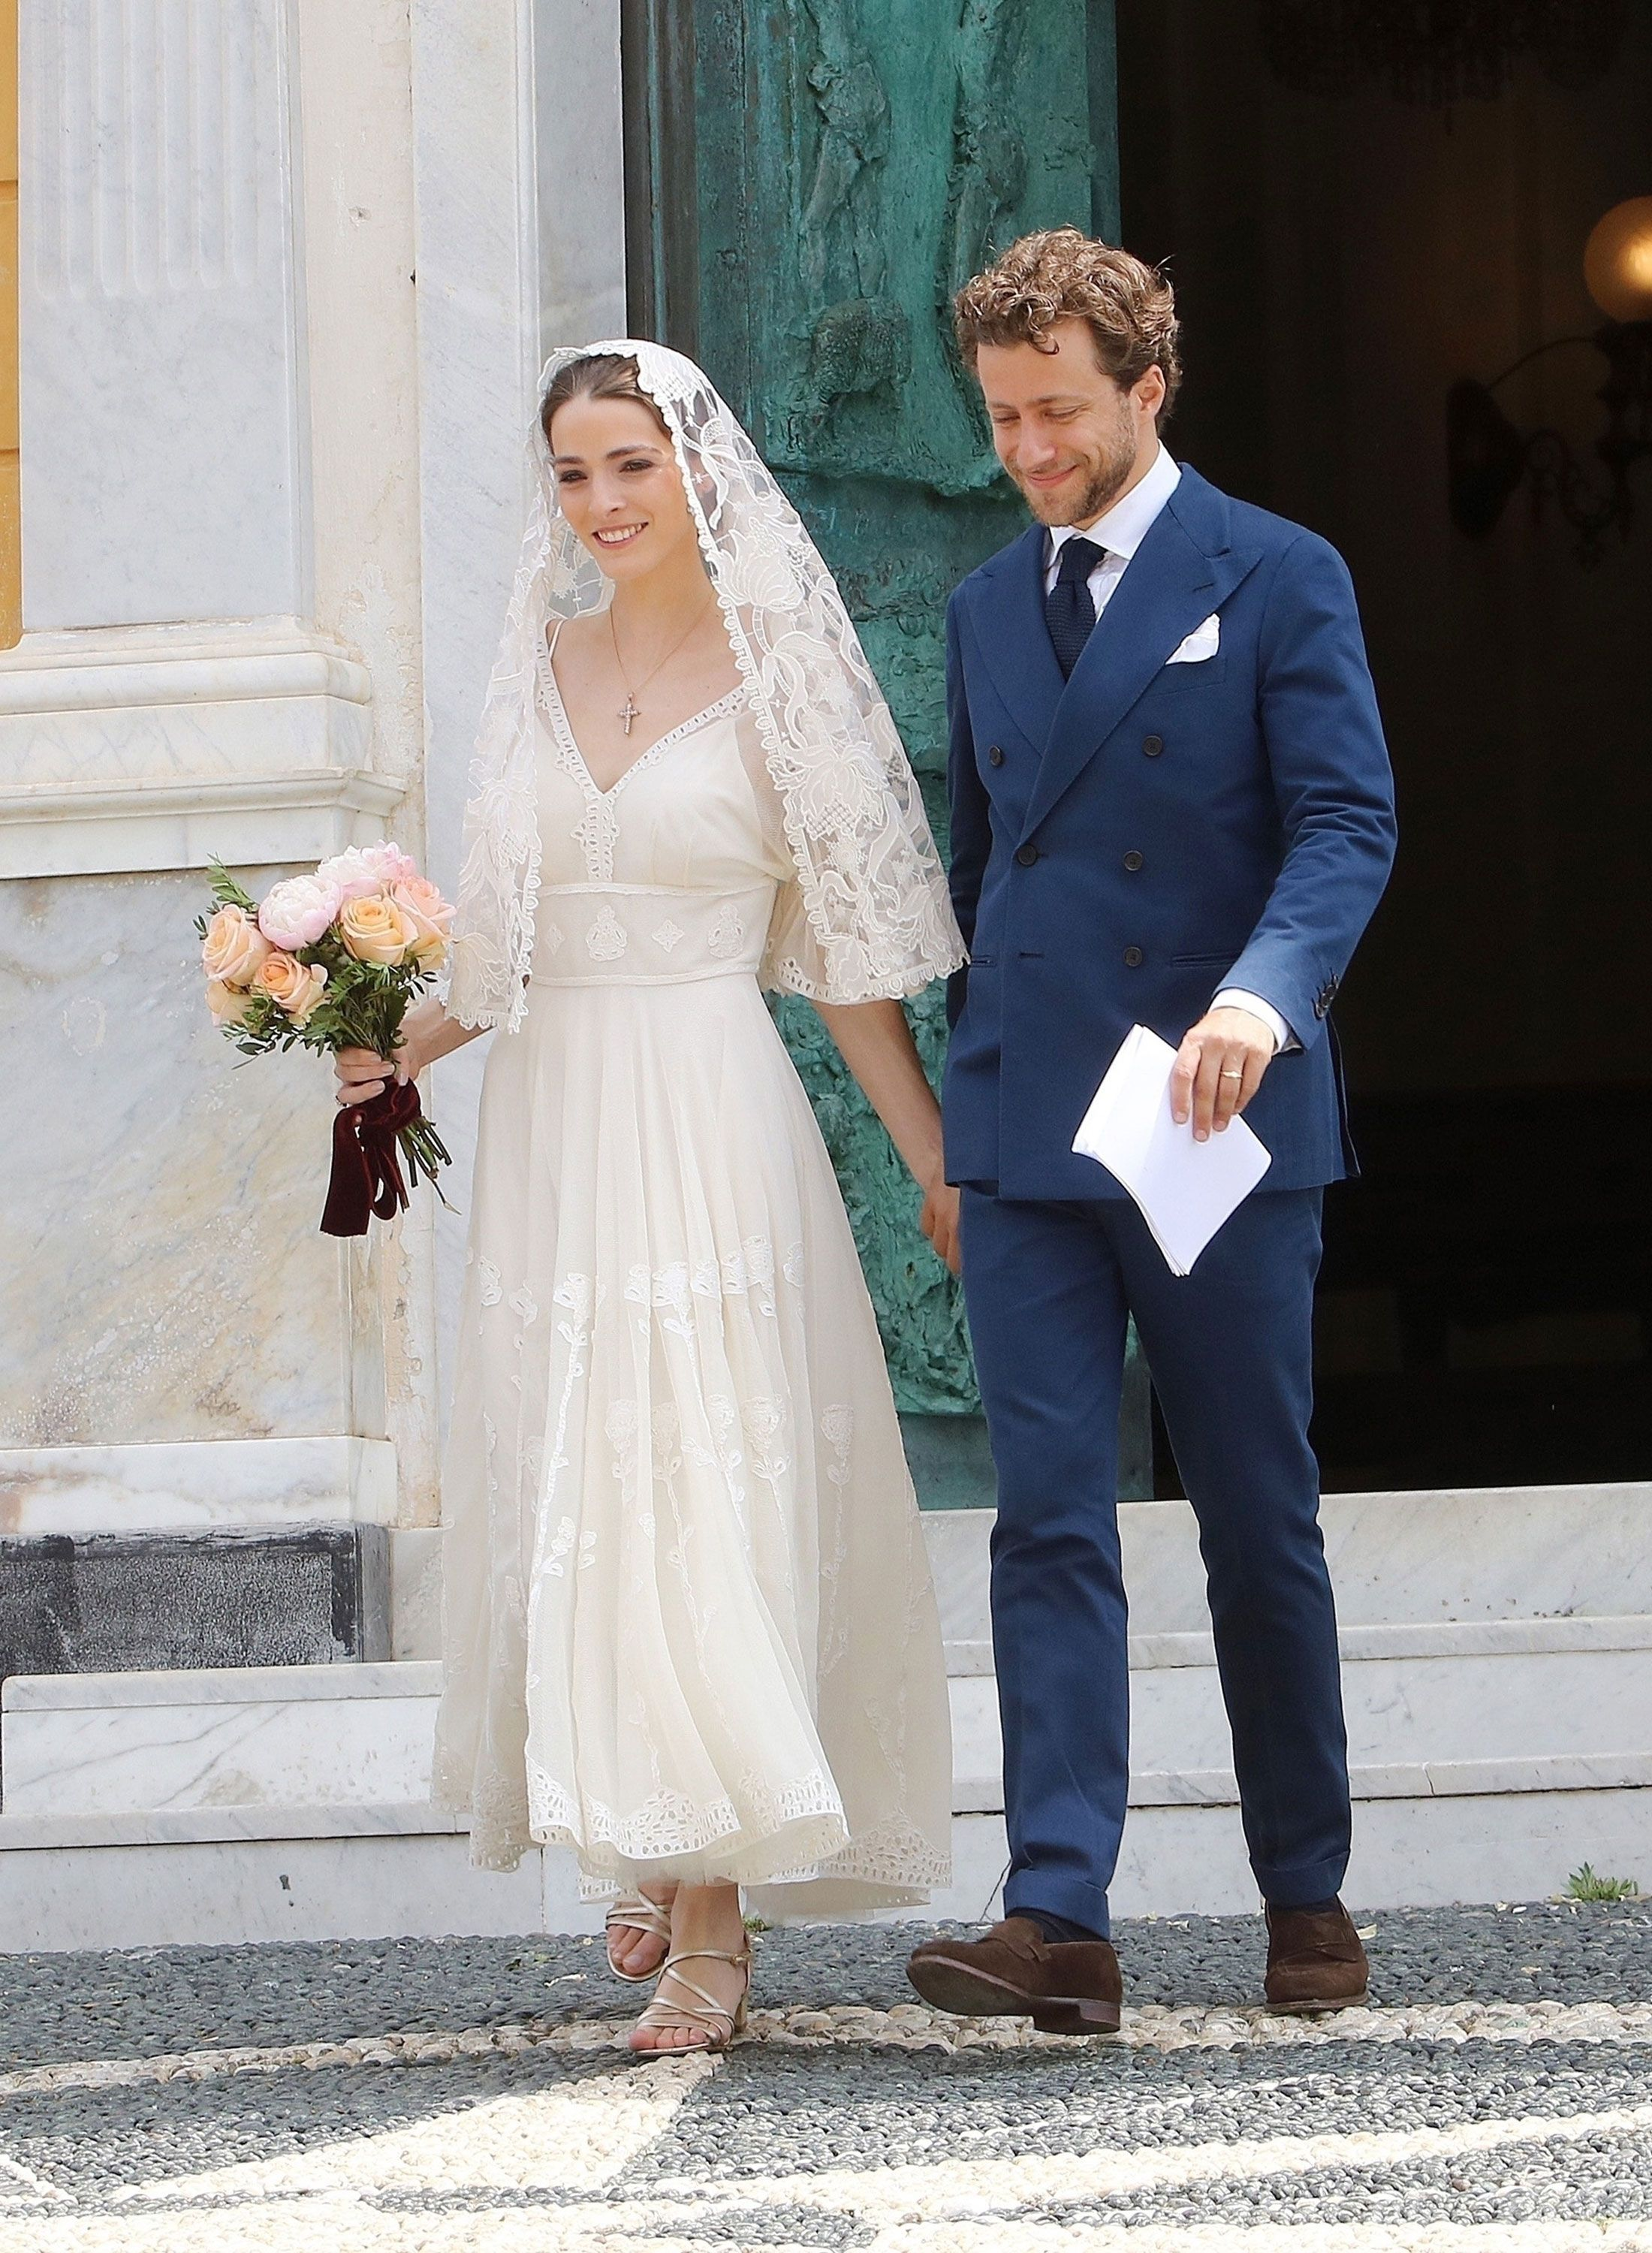 Bee Shaffer S Italian Wedding Dress Is As Stylish You Would Expect See Second